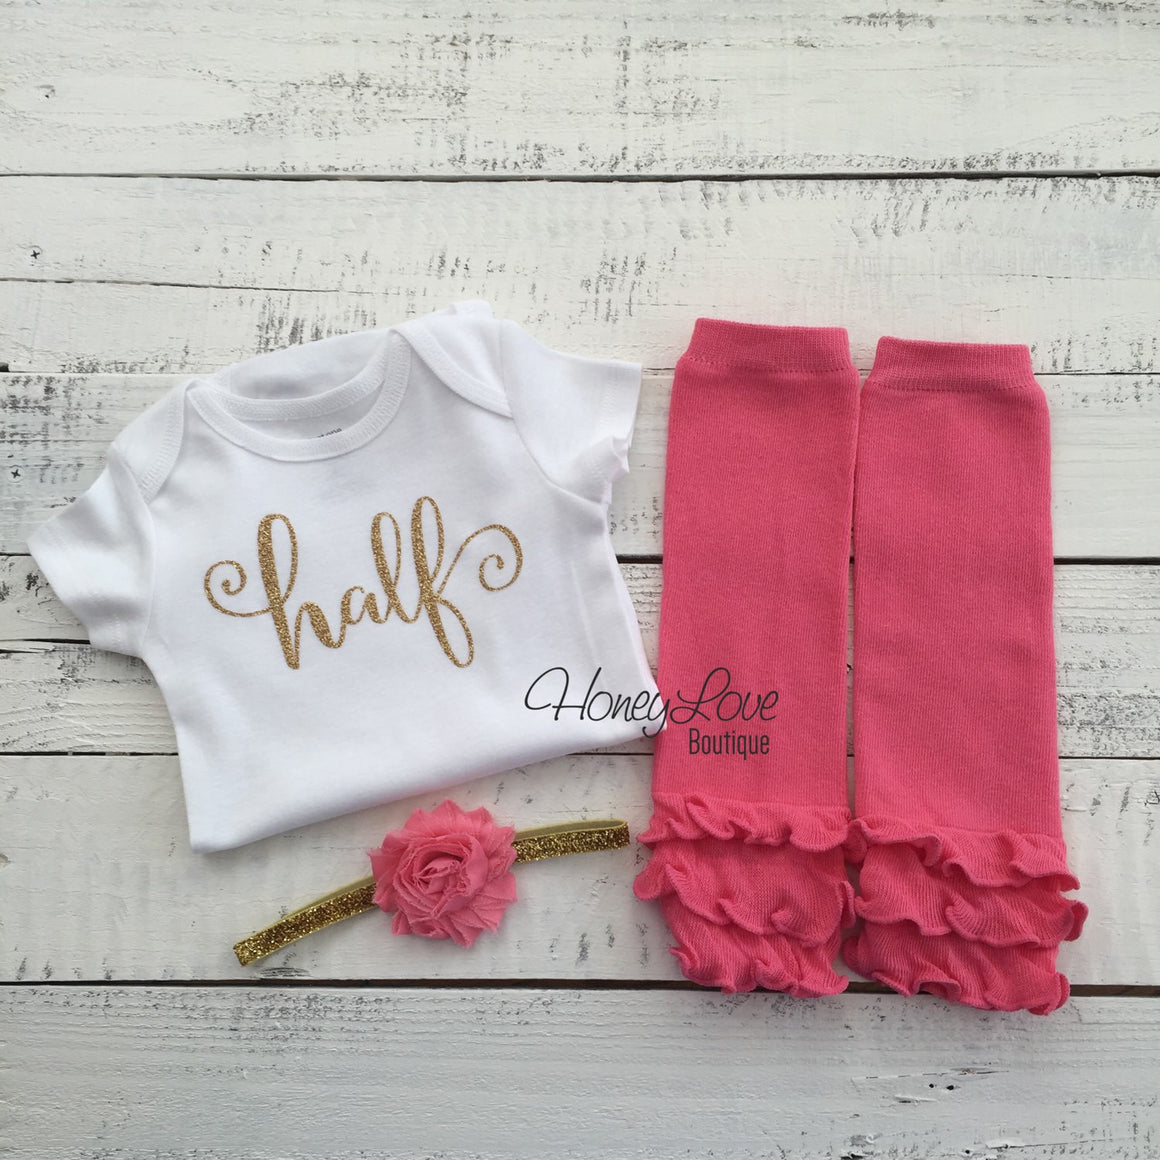 Half Birthday - gold glitter shirt, coral pink ruffle bottom leg warmers, flower headband bow, 6 months 1/2 Cake Smash baby girl outfit - HoneyLoveBoutique